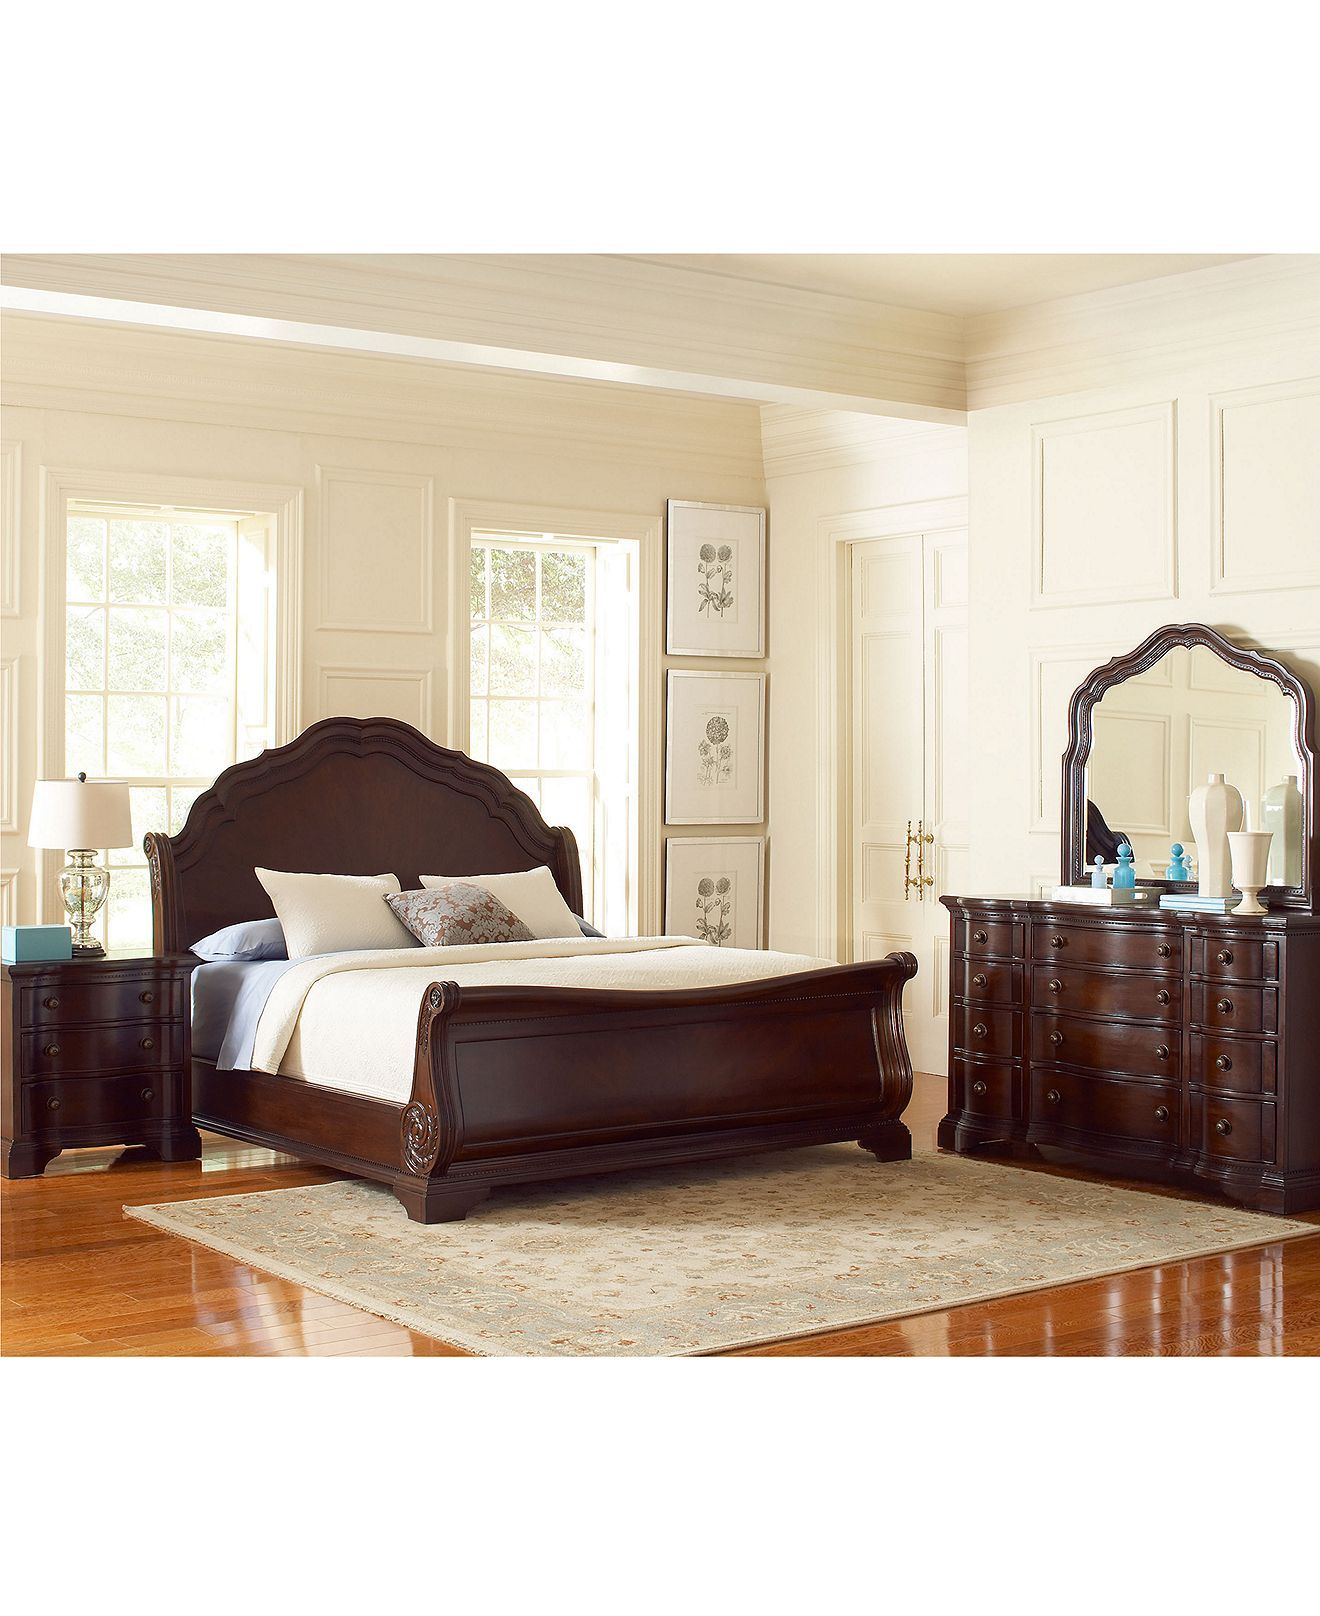 Celine Bedroom Furniture Sets & Pieces - furniture - Macy\'s ...